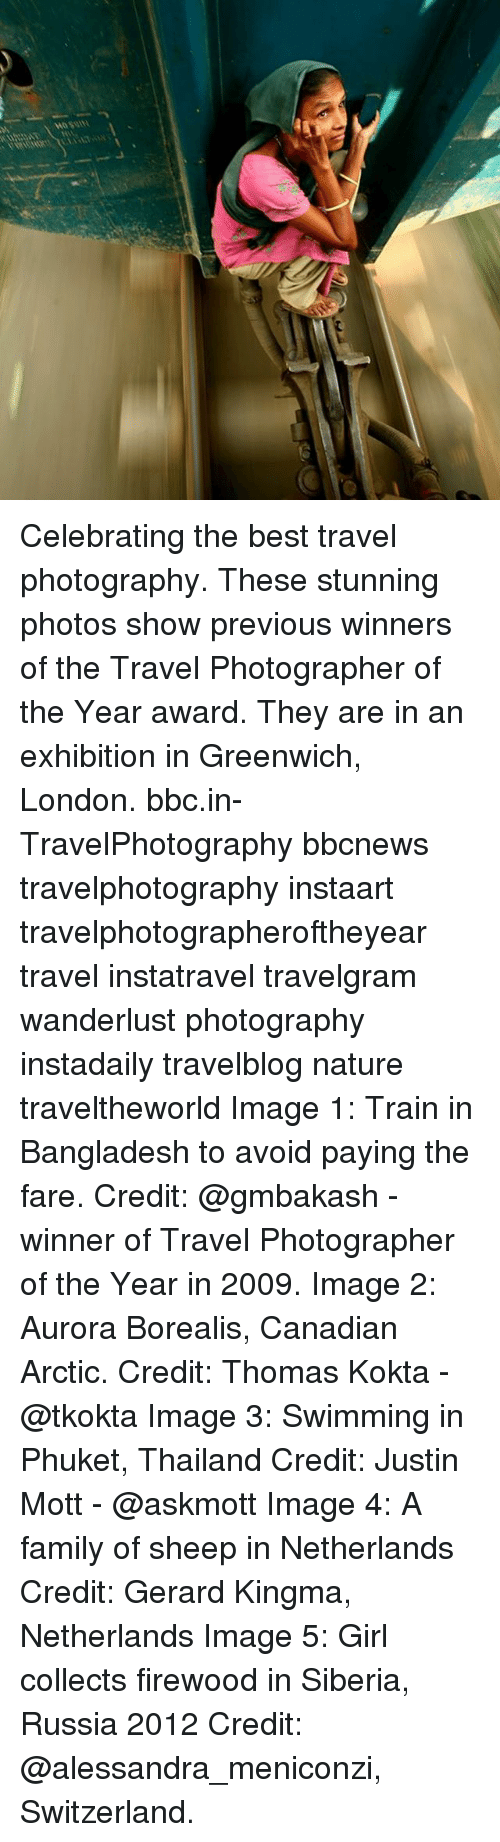 Thailande: Celebrating the best travel photography. These stunning photos show previous winners of the Travel Photographer of the Year award. They are in an exhibition in Greenwich, London. bbc.in-TravelPhotography bbcnews travelphotography instaart travelphotographeroftheyear travel instatravel travelgram wanderlust photography instadaily travelblog nature traveltheworld Image 1: Train in Bangladesh to avoid paying the fare. Credit: @gmbakash - winner of Travel Photographer of the Year in 2009. Image 2: Aurora Borealis, Canadian Arctic. Credit: Thomas Kokta - @tkokta Image 3: Swimming in Phuket, Thailand Credit: Justin Mott - @askmott Image 4: A family of sheep in Netherlands Credit: Gerard Kingma, Netherlands Image 5: Girl collects firewood in Siberia, Russia 2012 Credit: @alessandra_meniconzi, Switzerland.